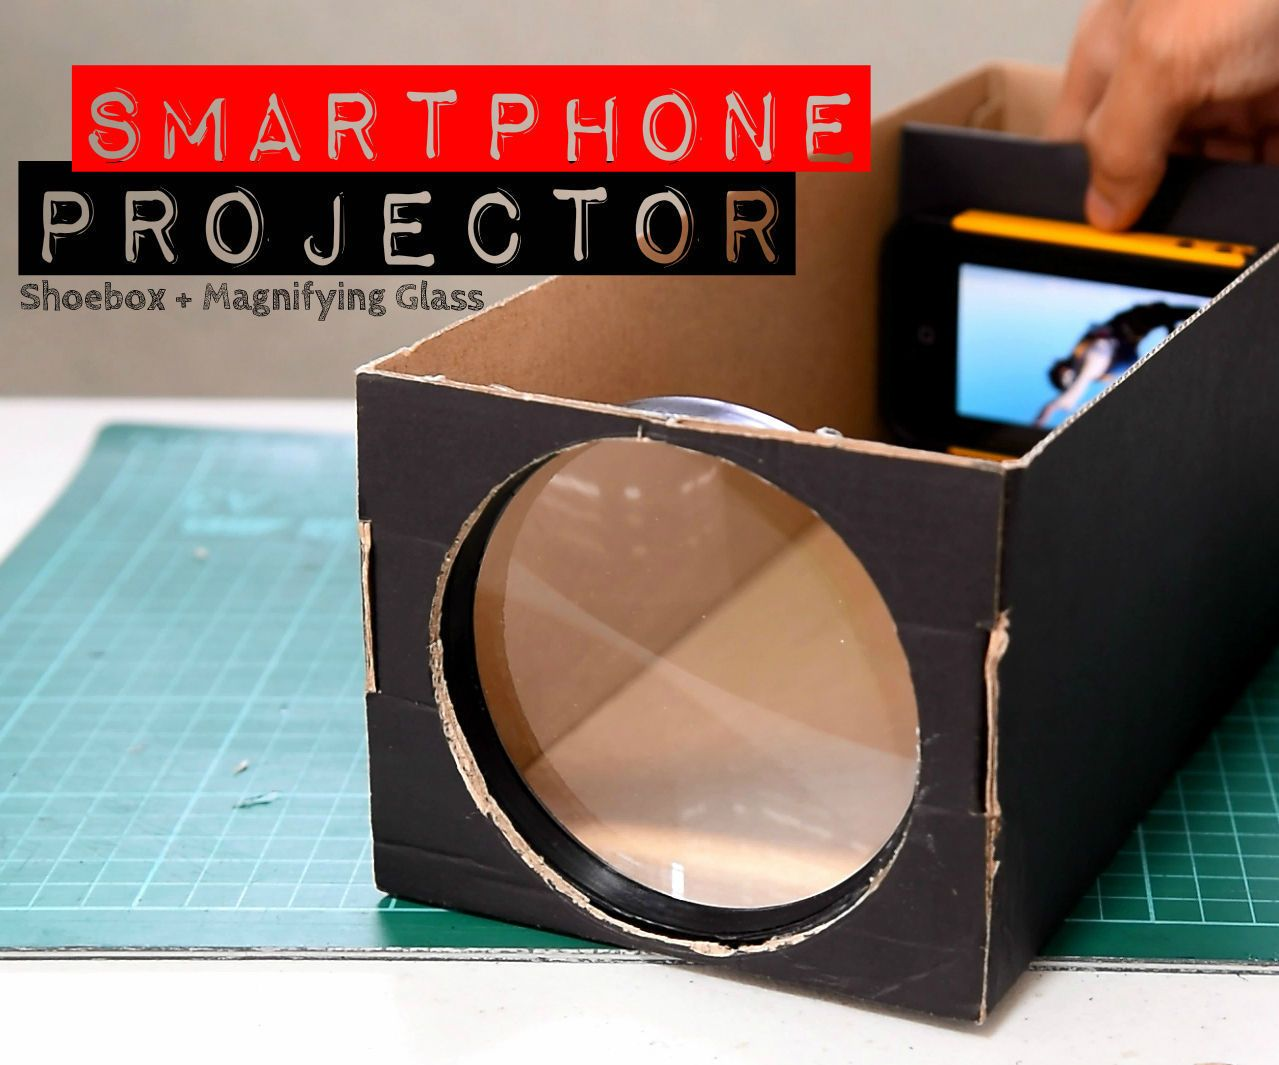 Build A Smartphone Projector With A Shoebox Smartphone Projector Diy Projector Homemade Projector